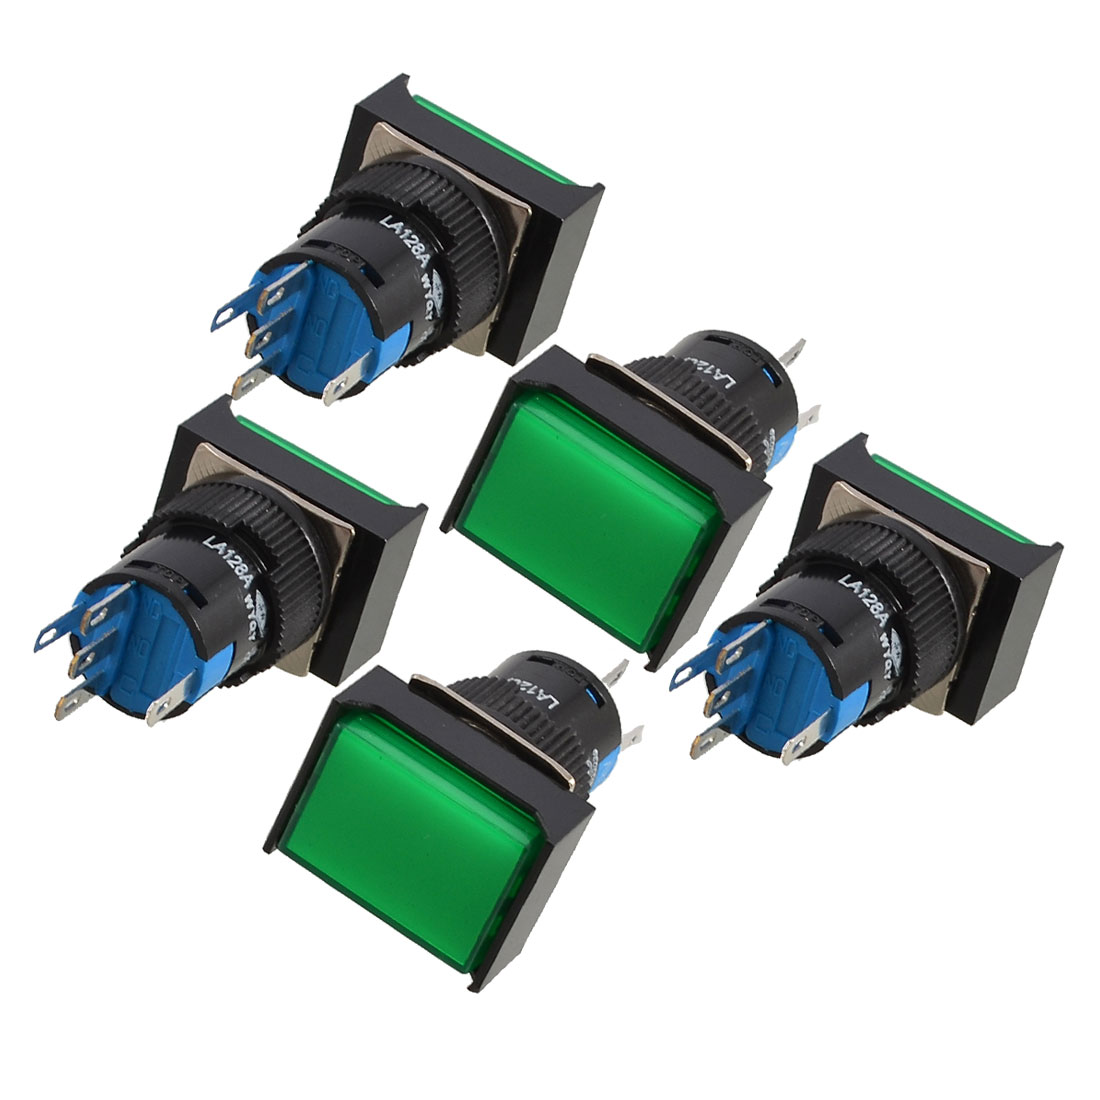 5 Pcs Green Rectangle Cap DC 12V Light SPDT 5 Pins Push Button Switch